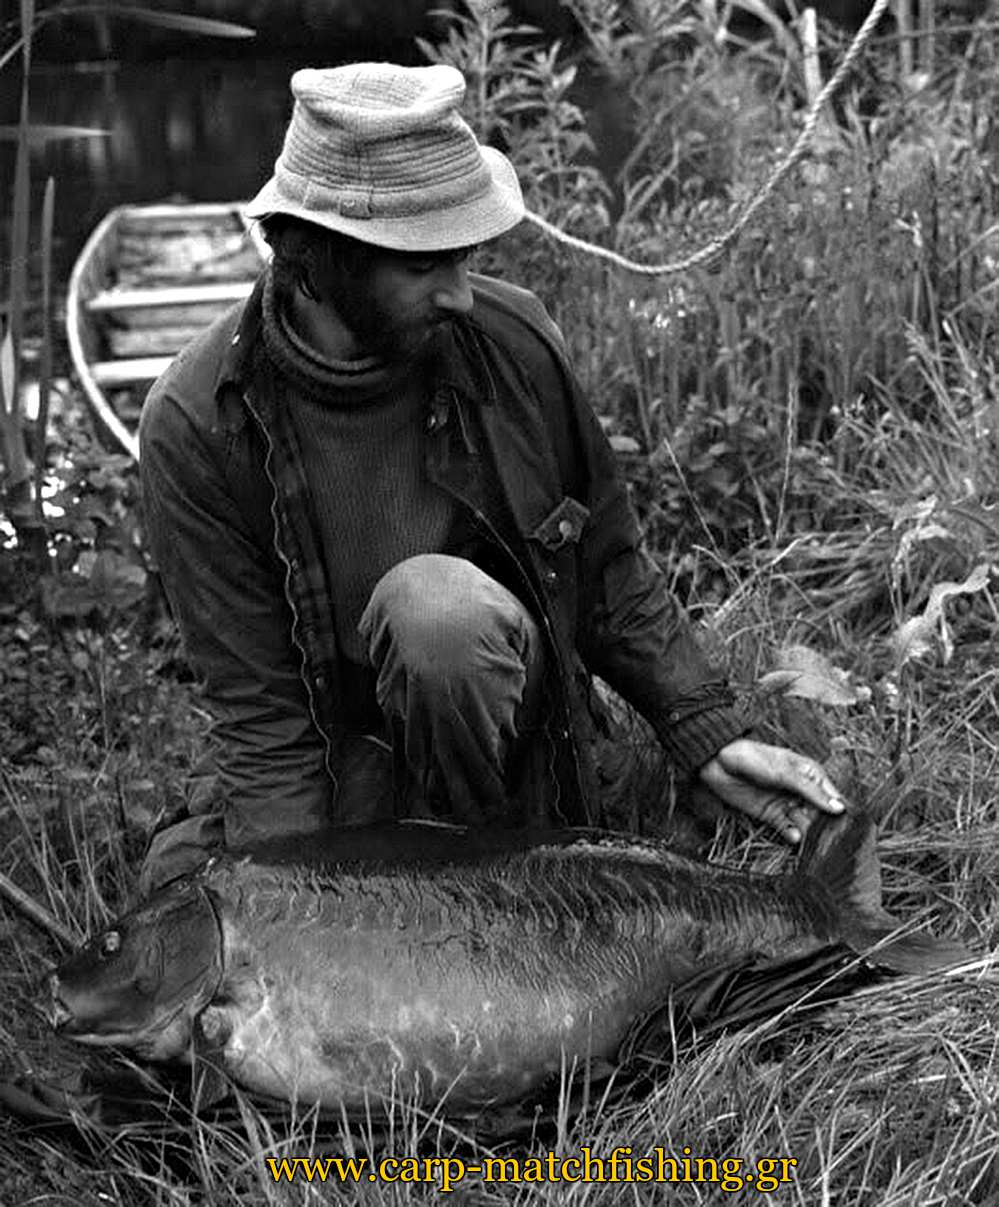 7-legends-and-myths-of-carpfishing-carpmatchfishing